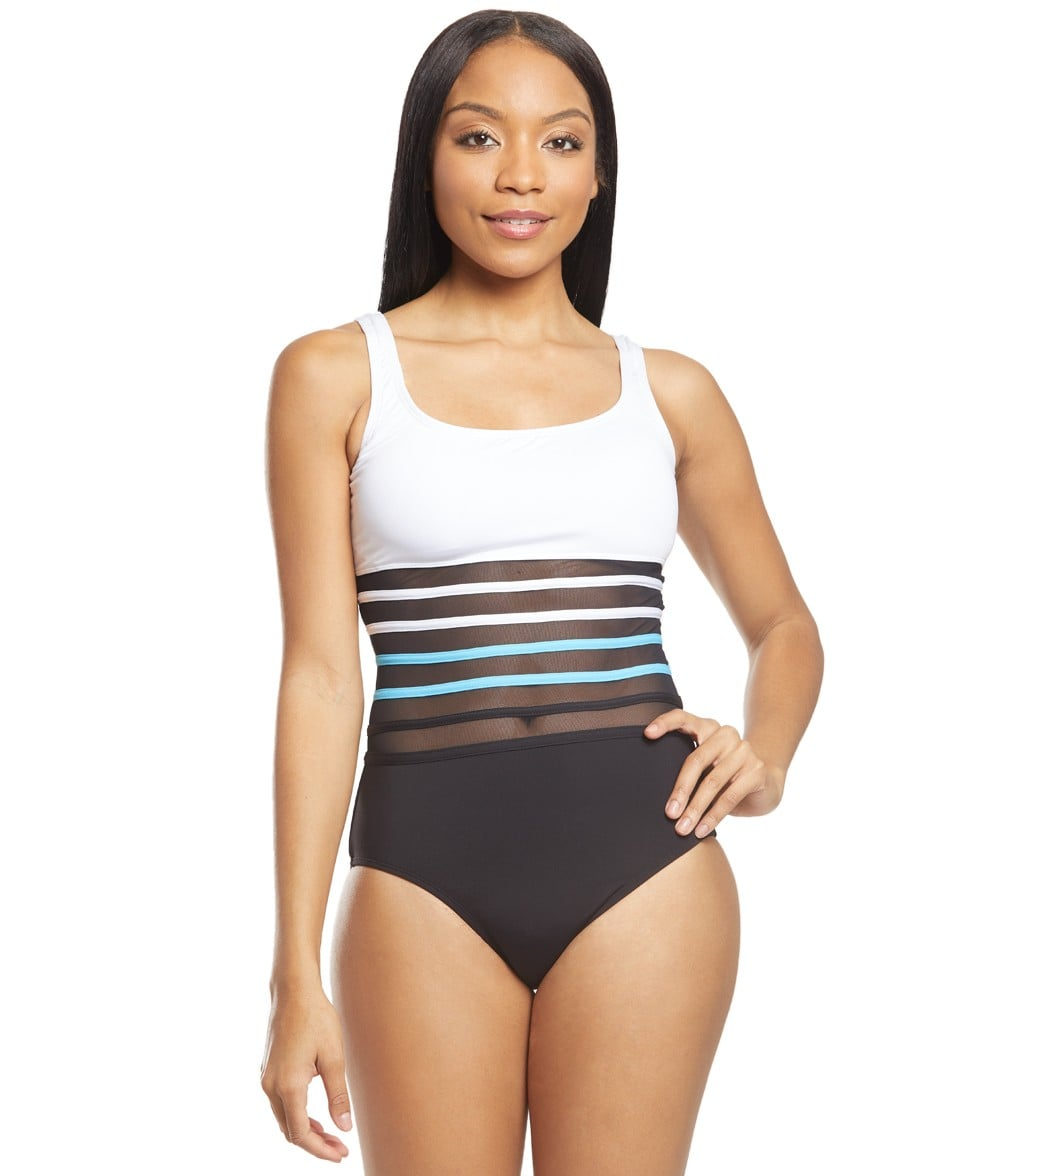 db6398115a498 Nautica Meridian Scoop Mesh One Piece Swimsuit at SwimOutlet.com - Free  Shipping